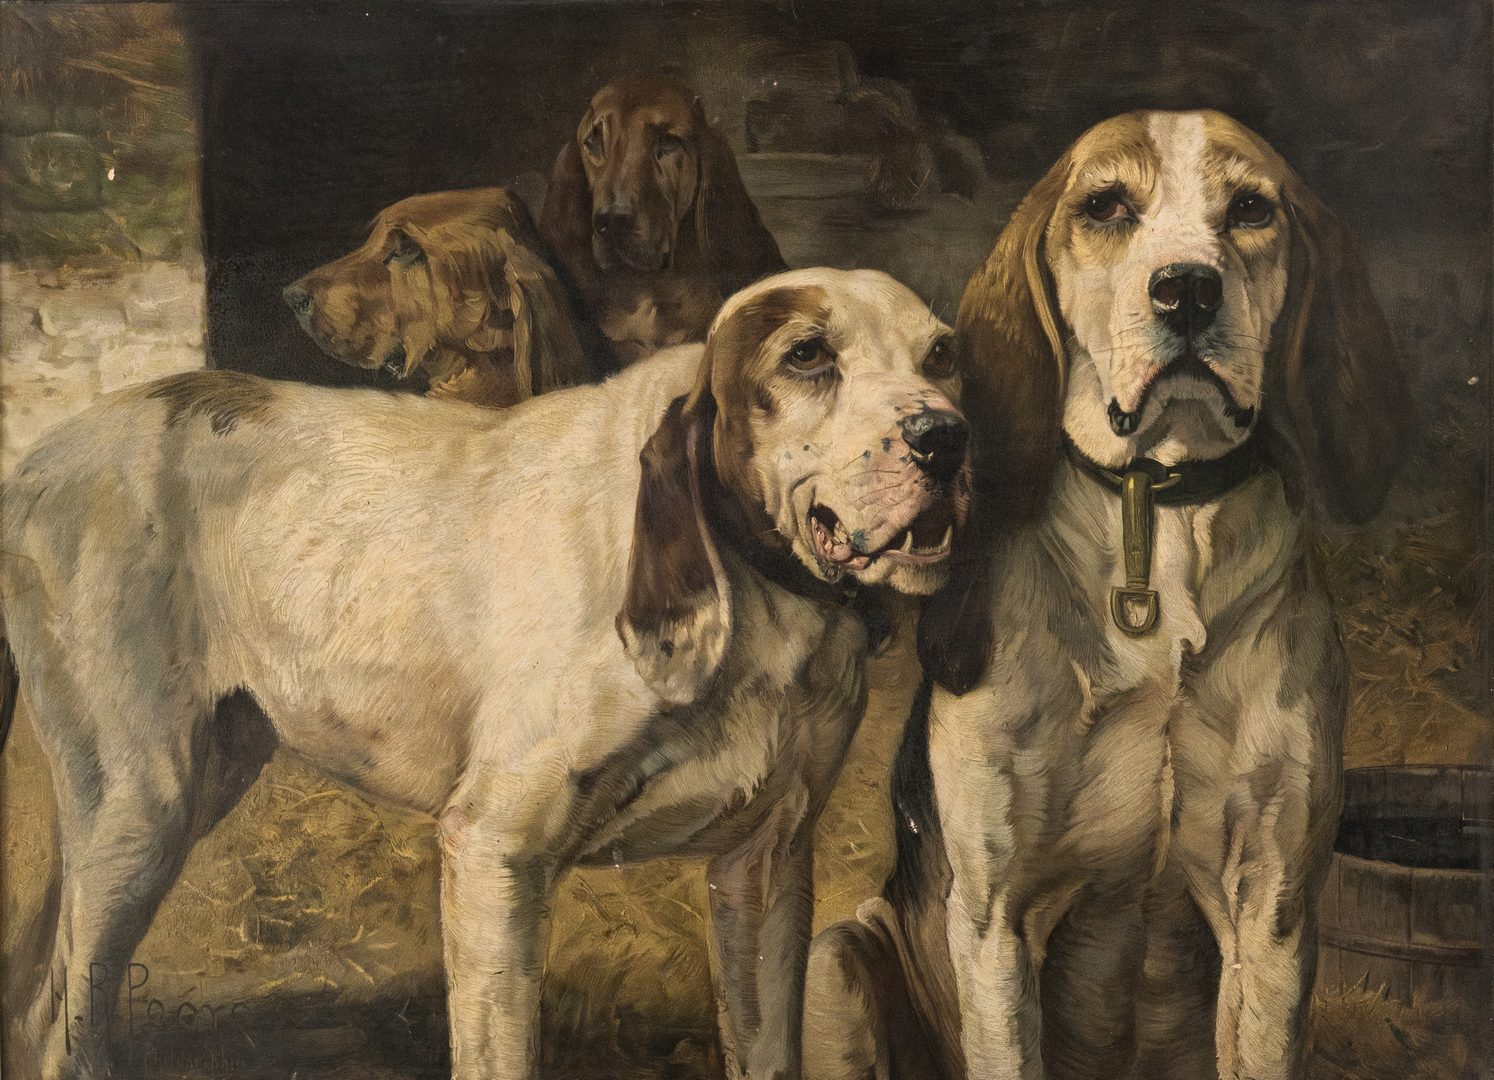 Lot 698: H. R. Poore Winchester Sign with Hunting Dogs